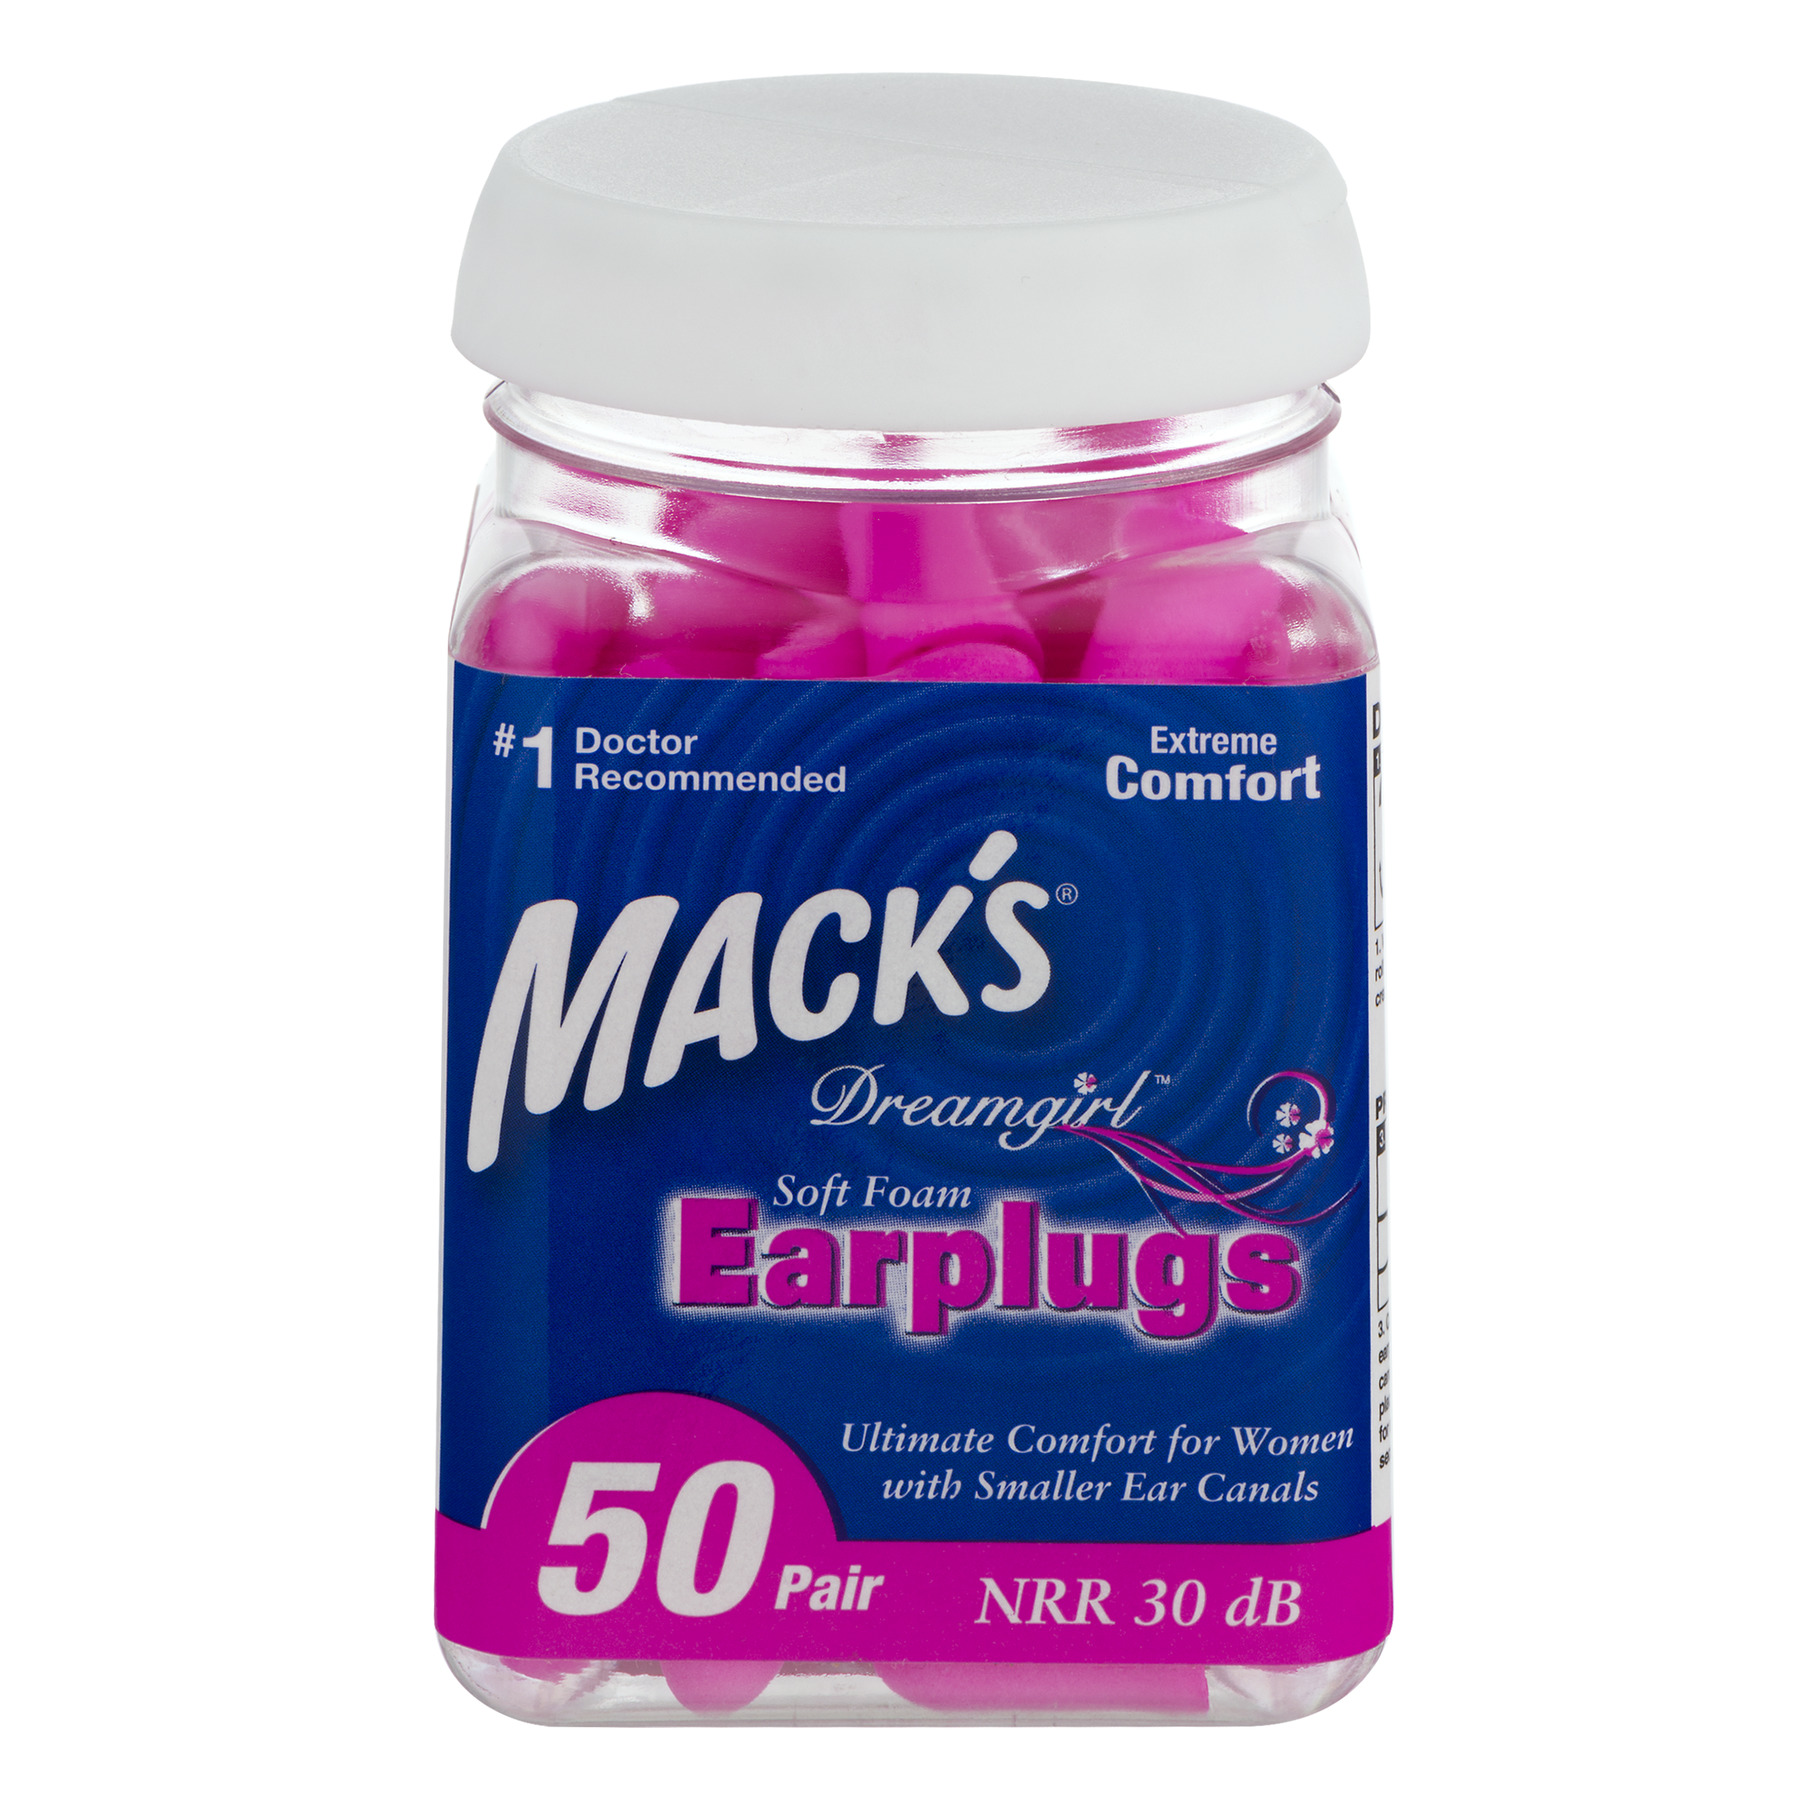 Mack's Dreamgirl Earplugs - 50 CT50.0 CT